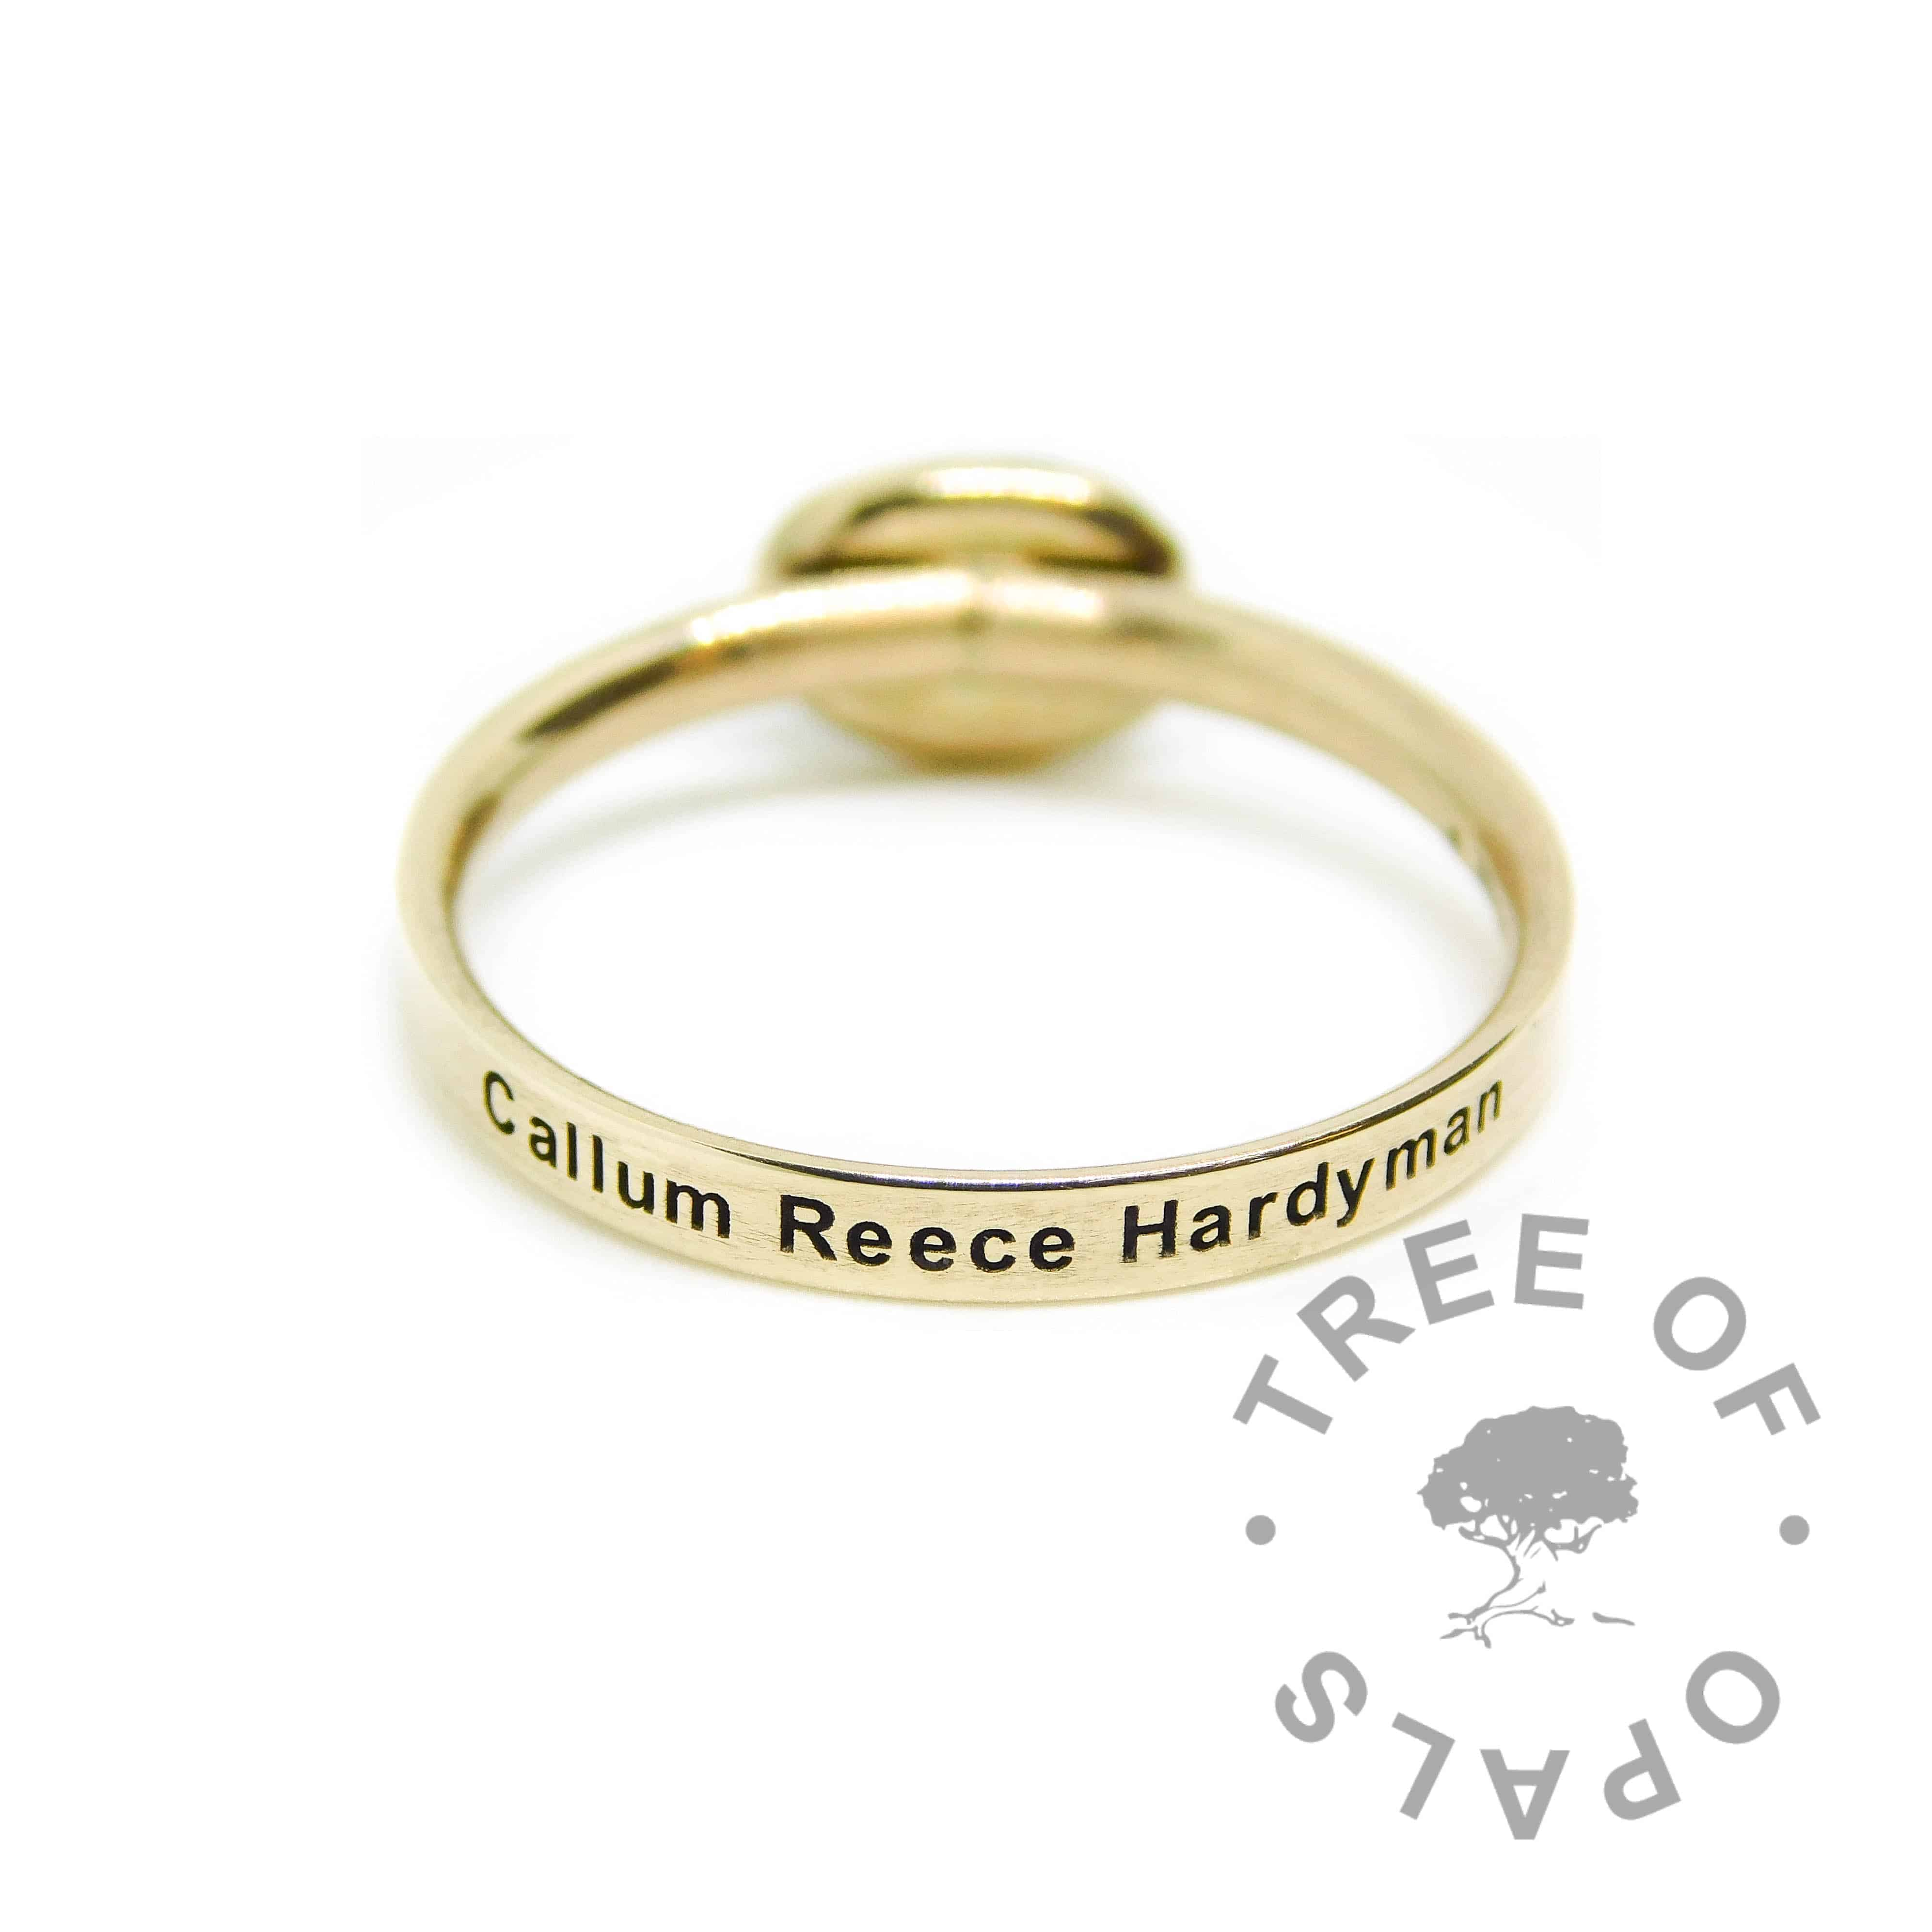 gold engraved ring 14ct with name. Minimum ring width 2mm, hallmarked solid gold band